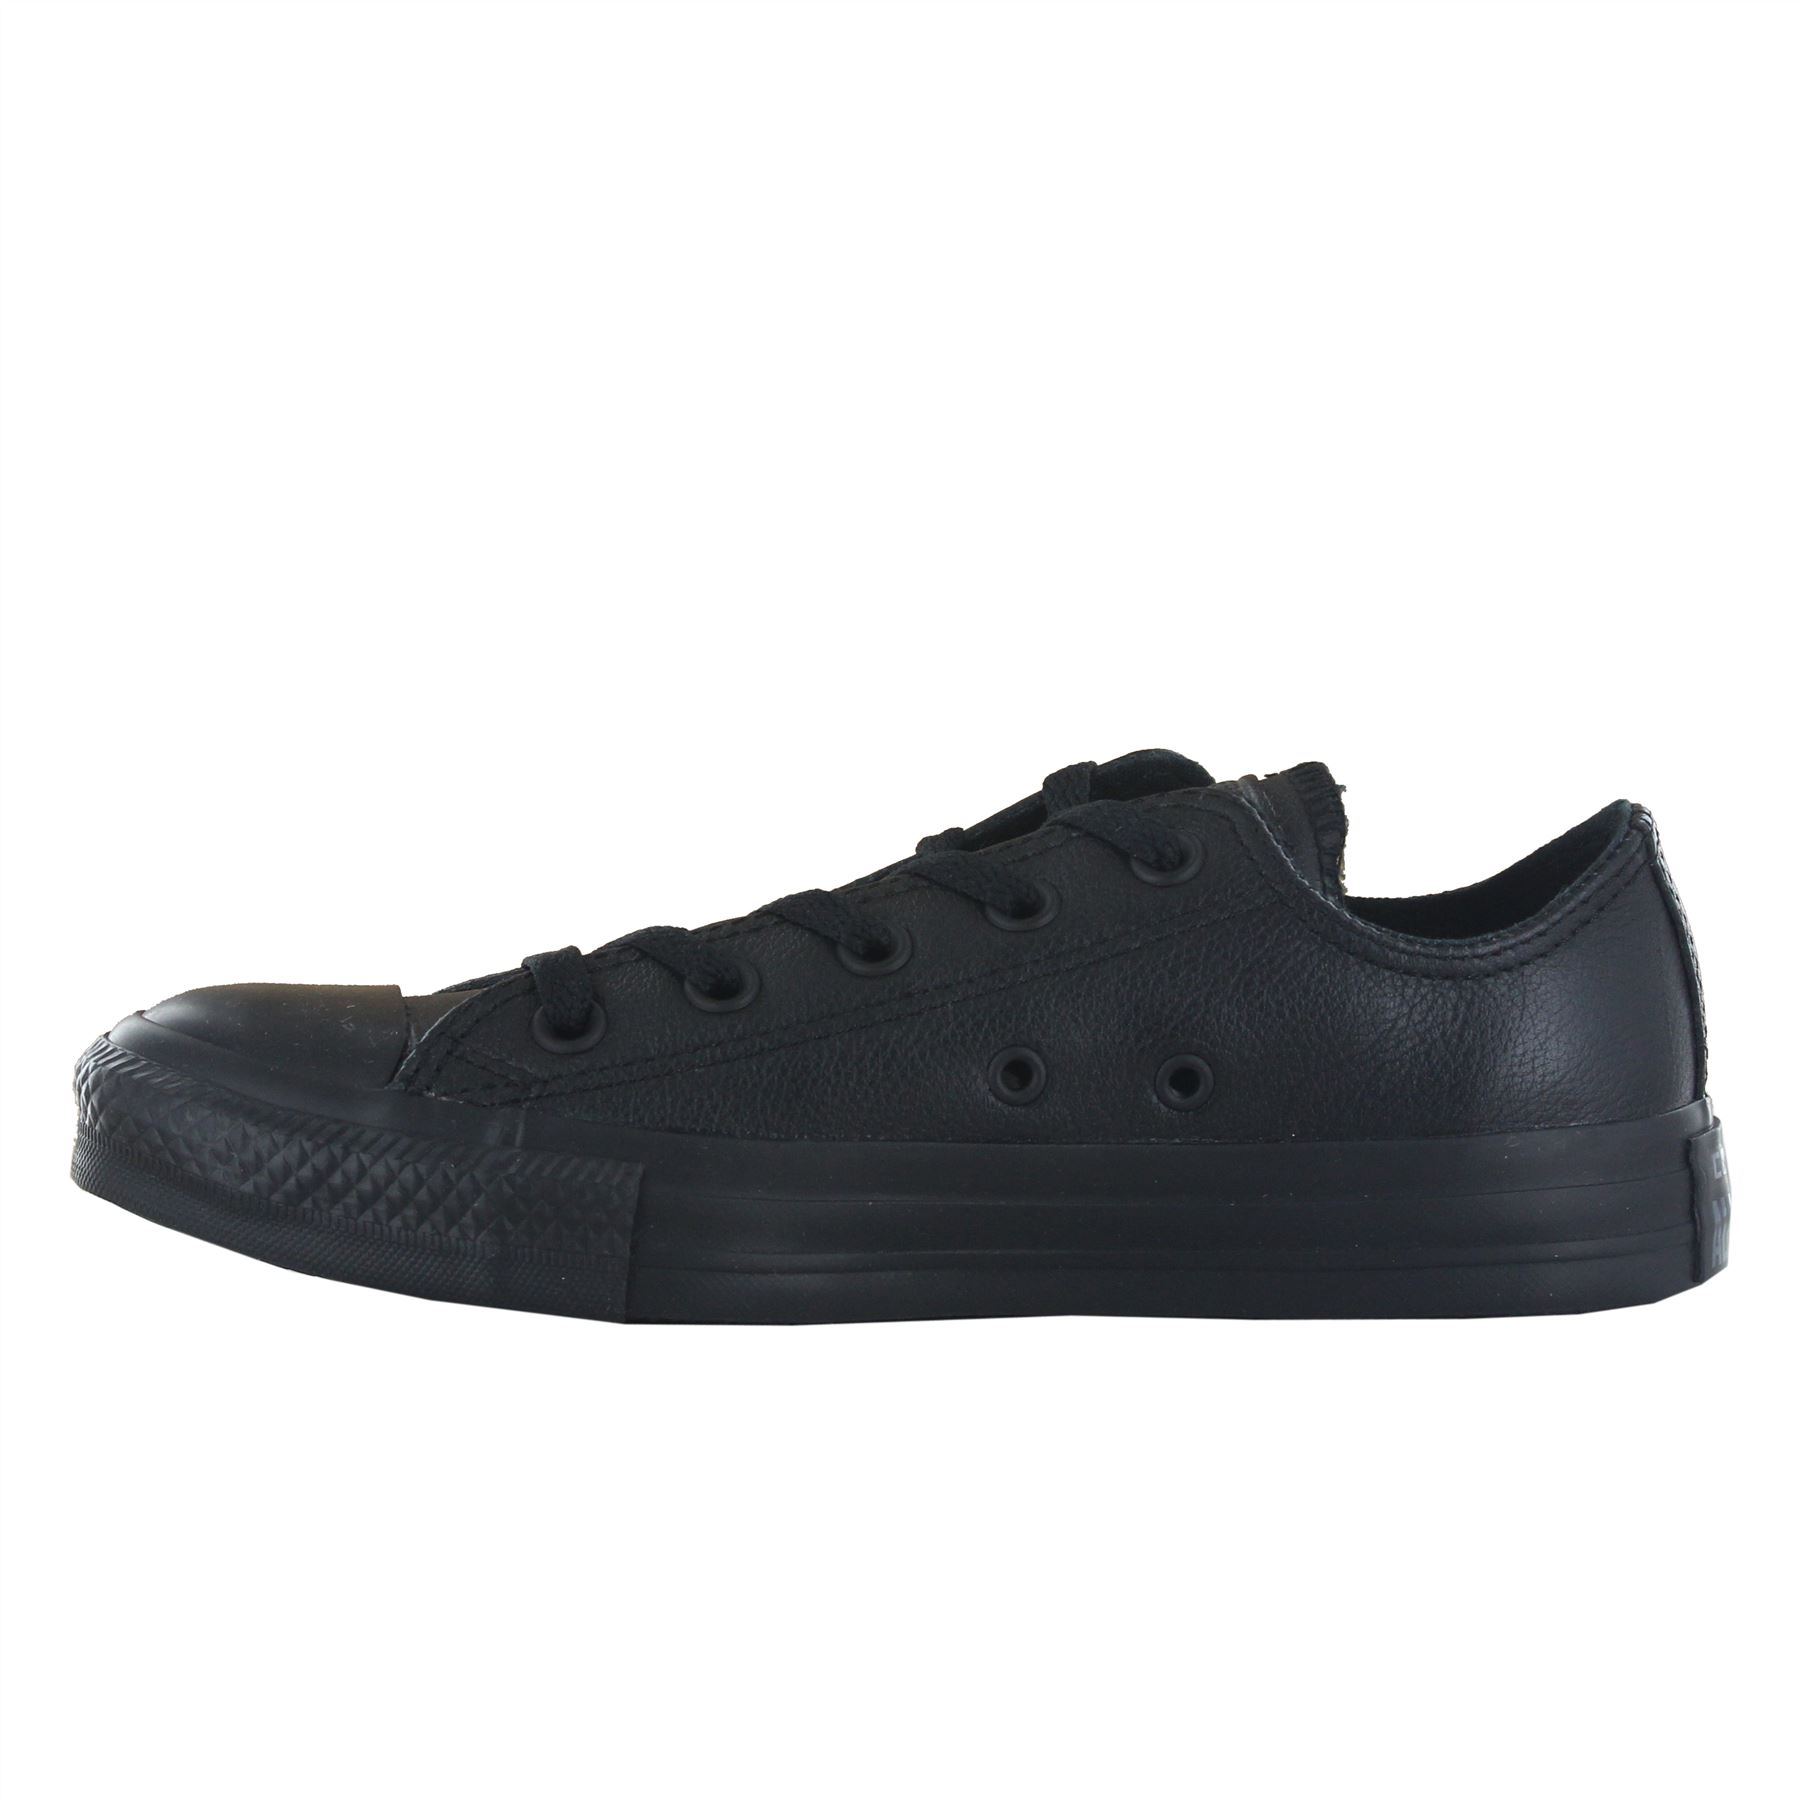 3dba2ee6a07e Converse All Star Ct Ox Leather Unisex Mens Womens Ladies Trainers ...